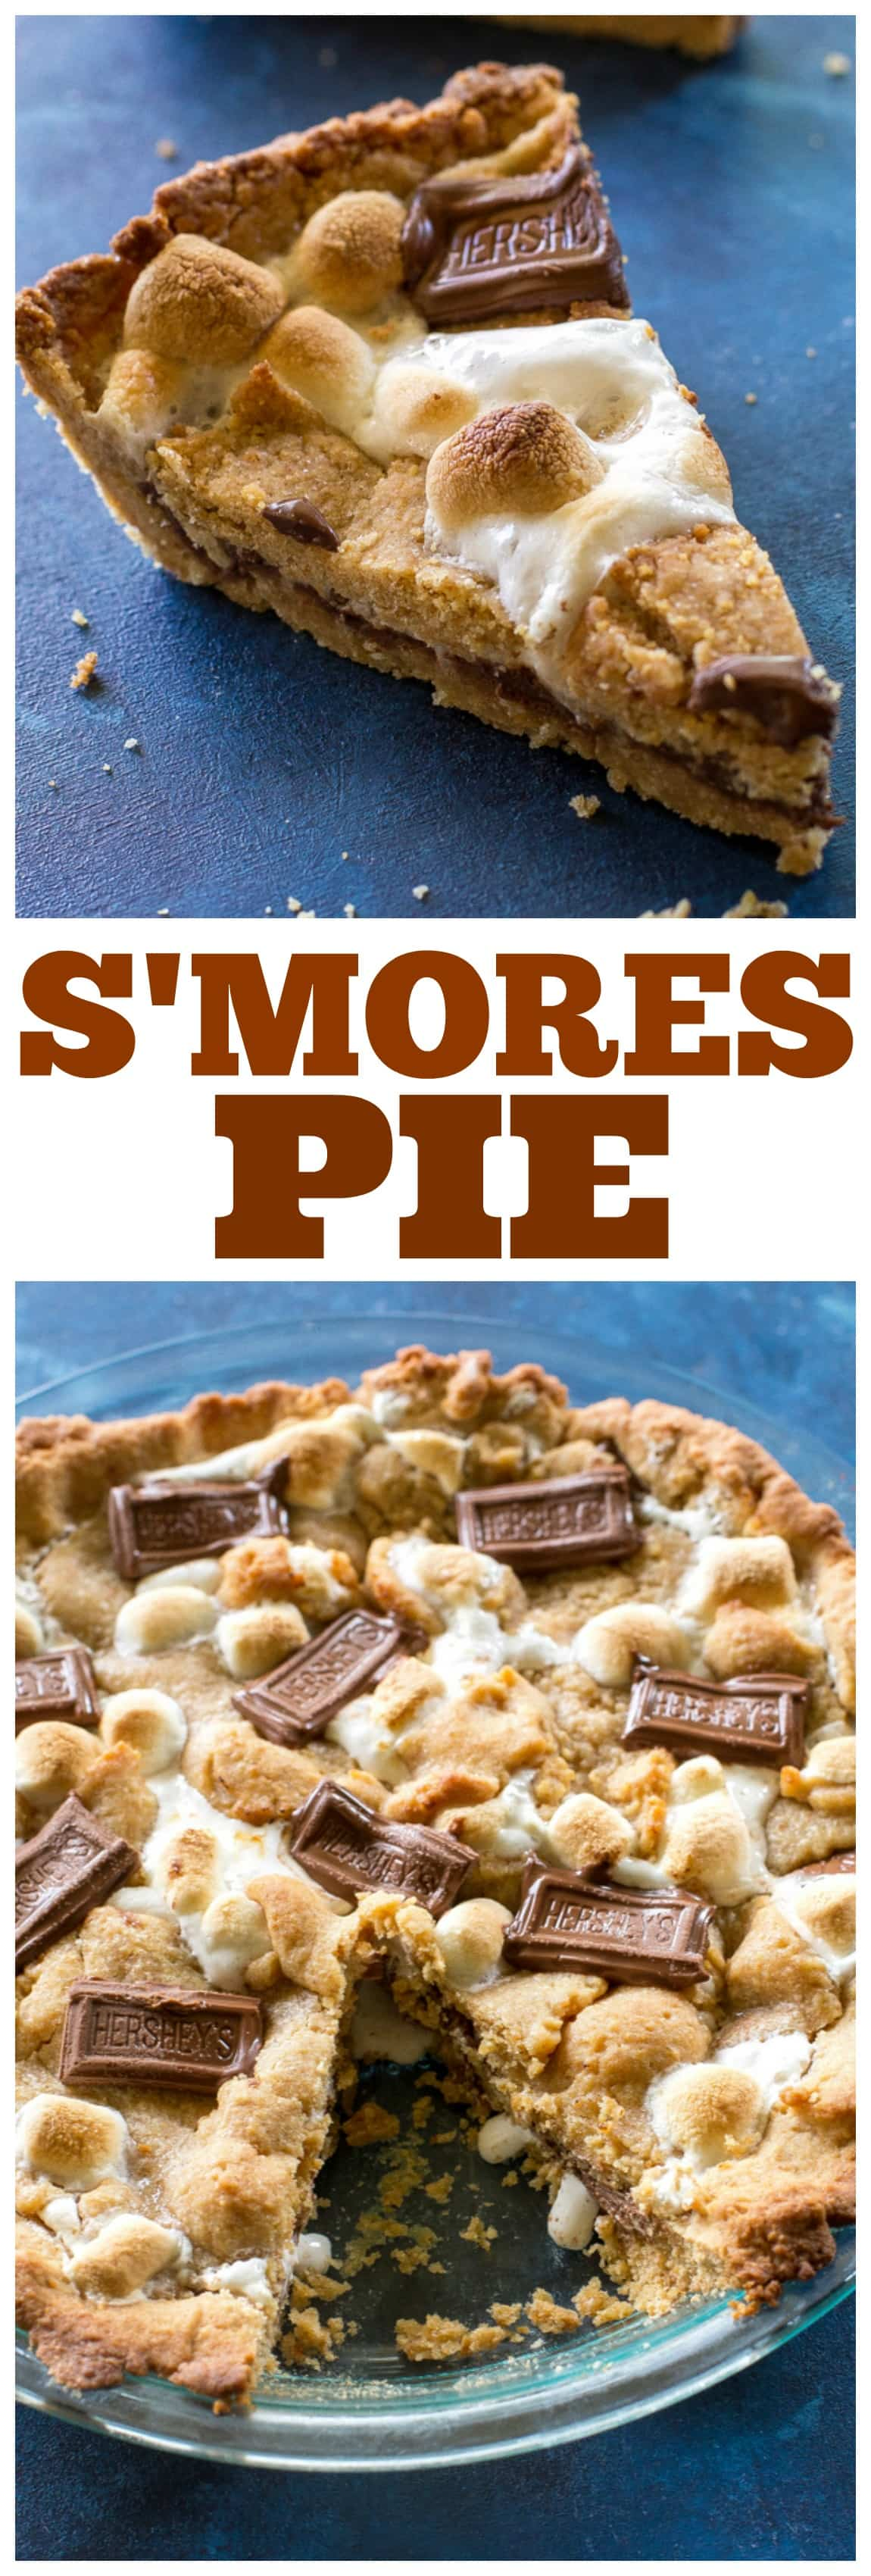 Easy S'mores Pie - layers of graham cracker dough, marshmallows, and chocolate. #smores #pie #recipe #dessert #thanksgiving